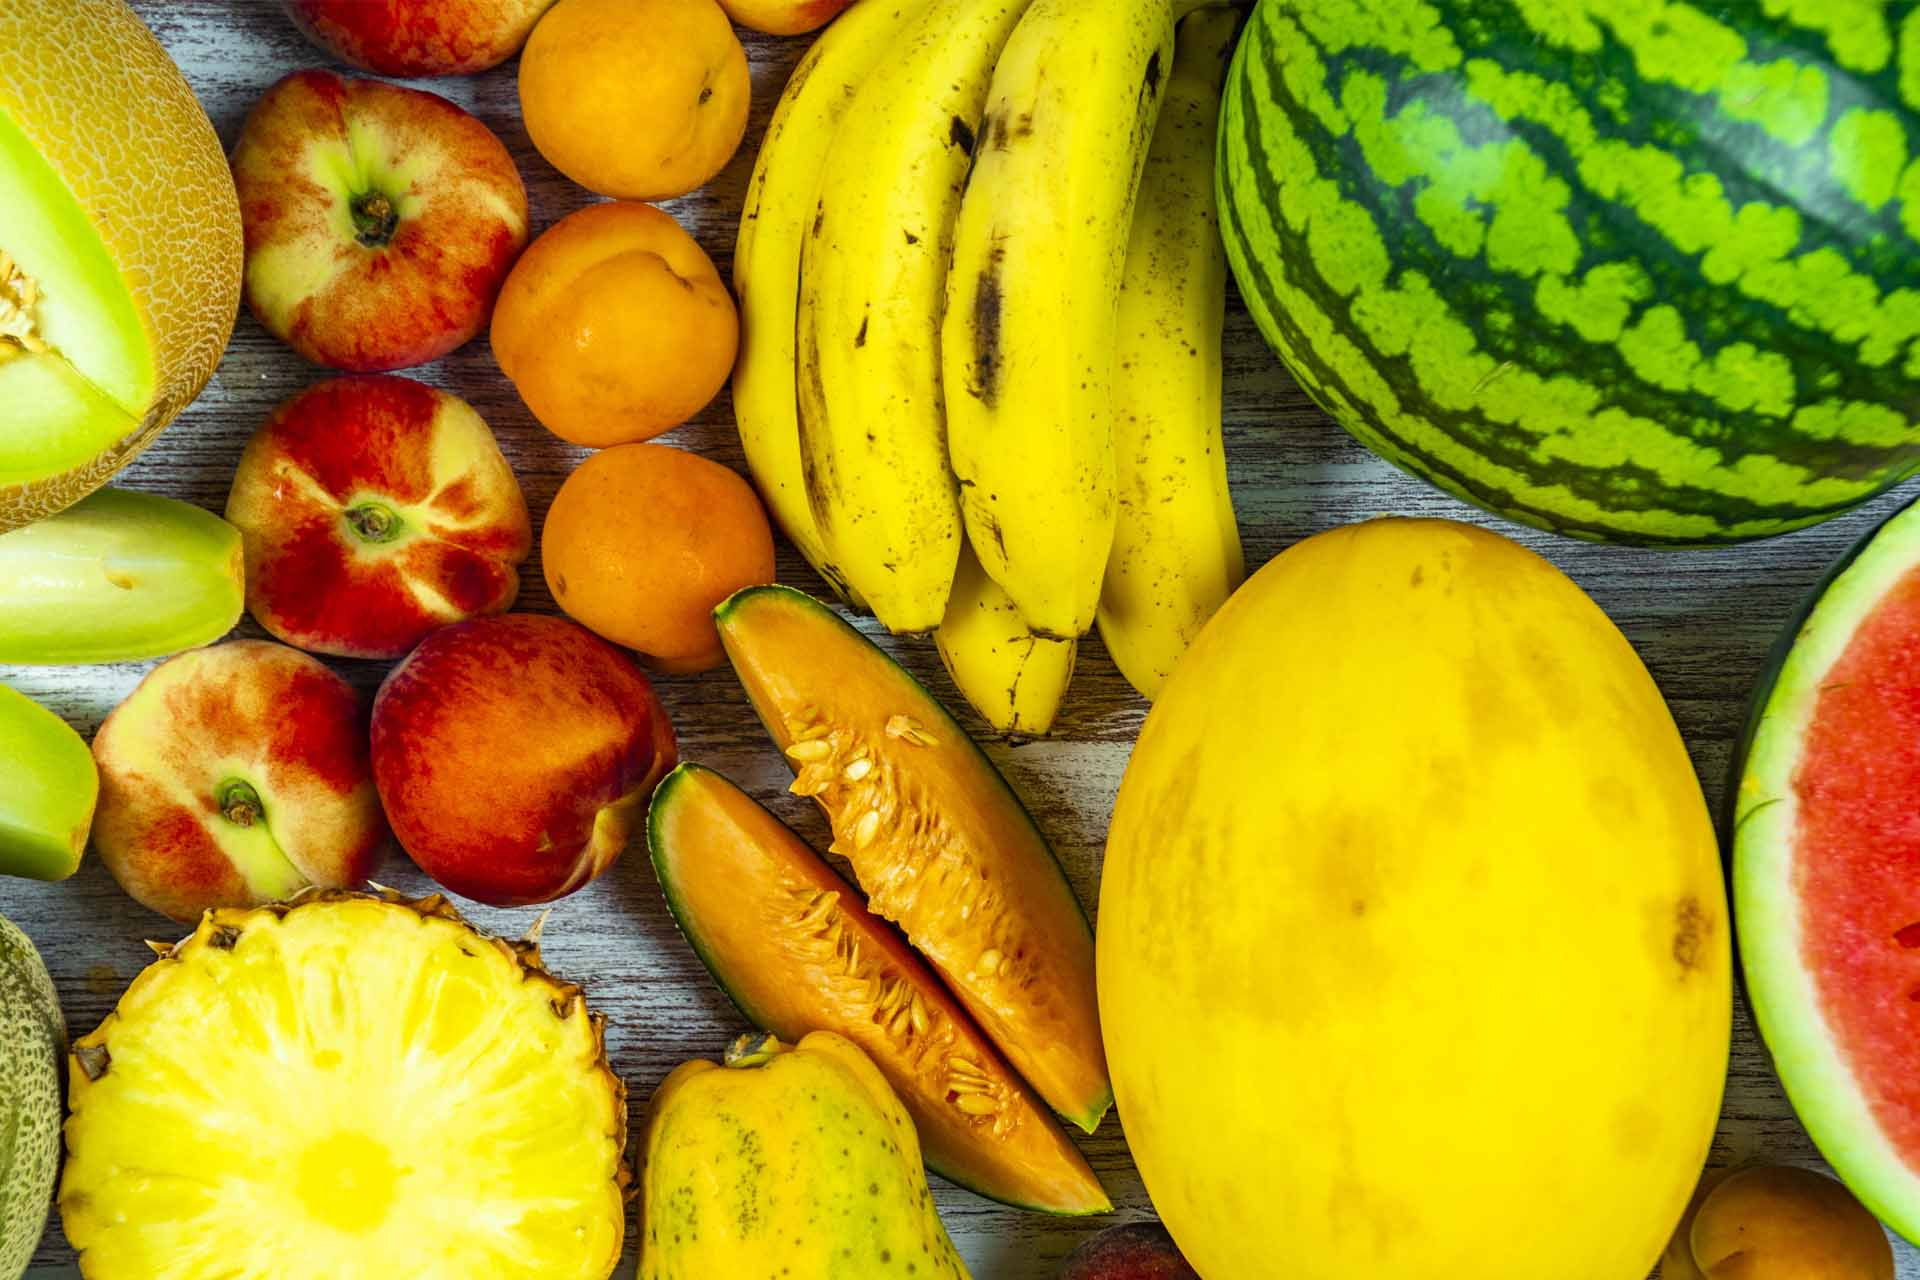 Cinco mitos sobre la fruta que no son verdad